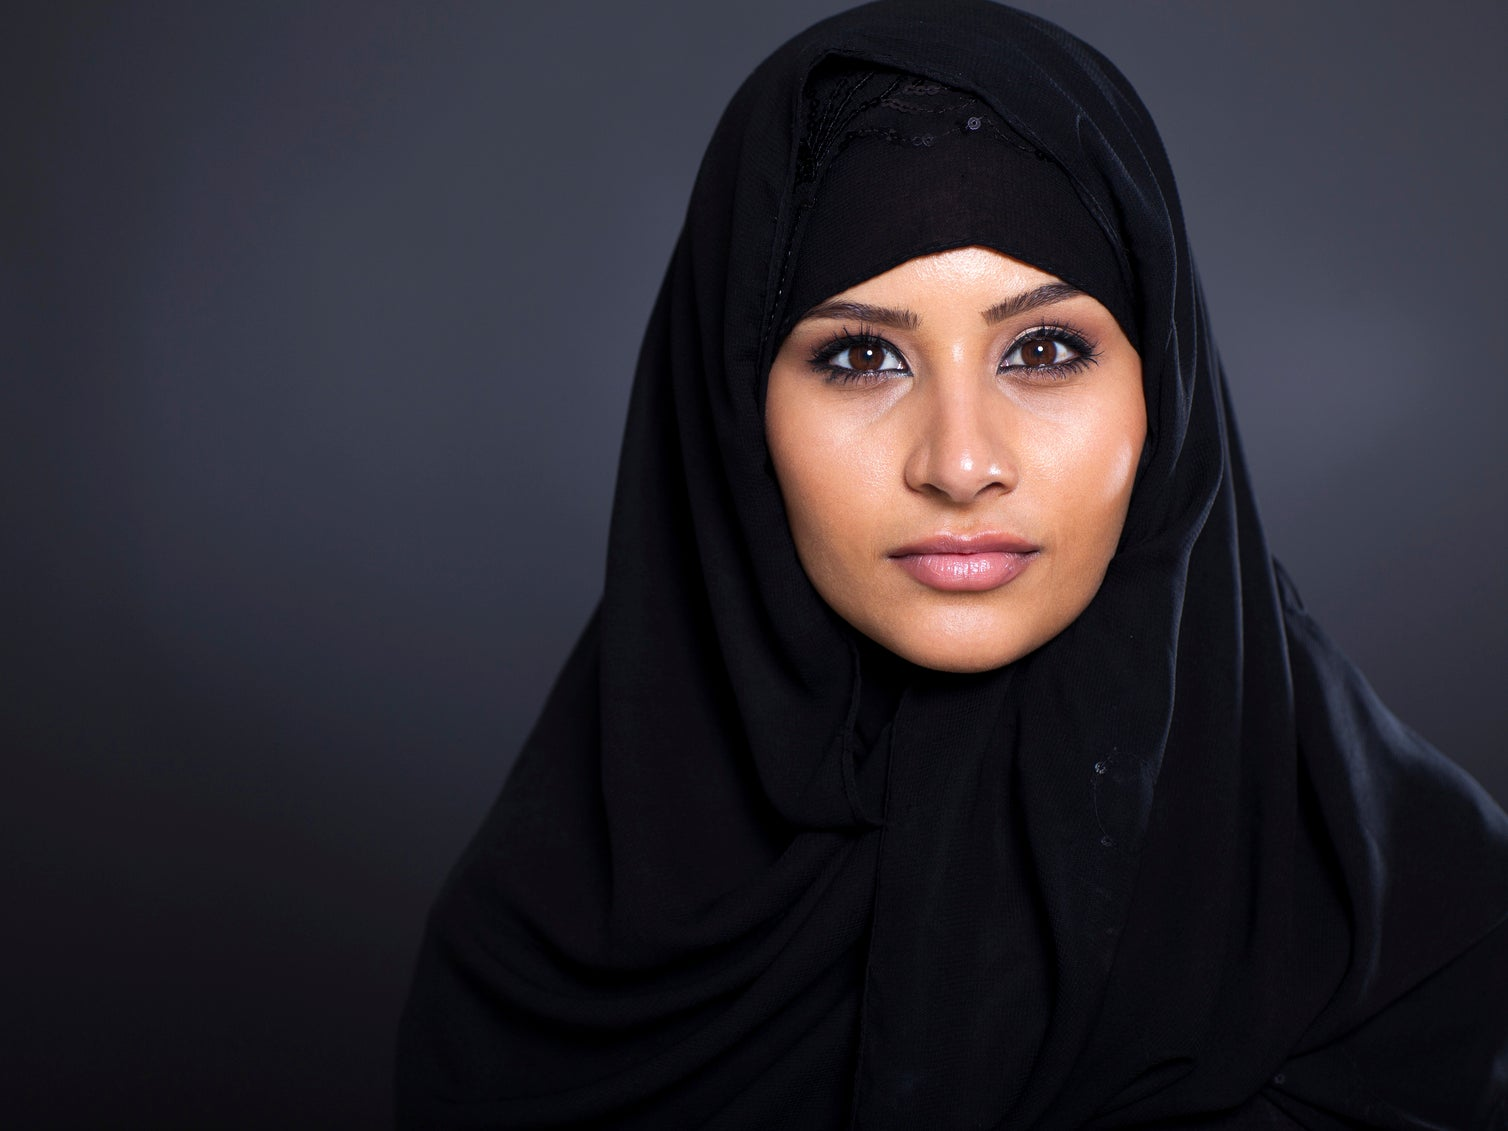 new augusta muslim single women I have a good sense of humour and enjoy meeting new people and experiencing new things  male augusta,  single muslim women single lesbian muslim women.